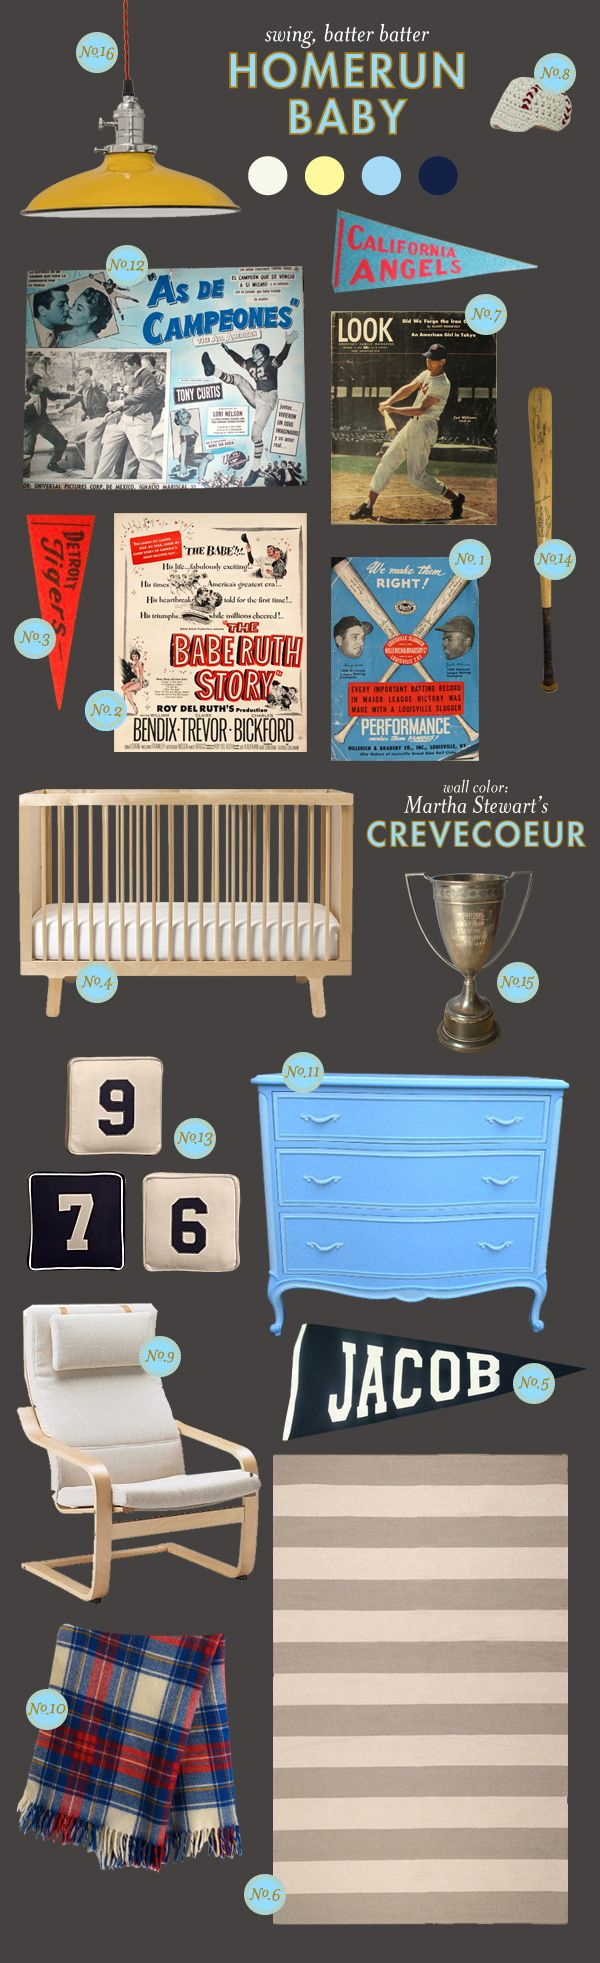 I love this vintage sports theme for a boy's room